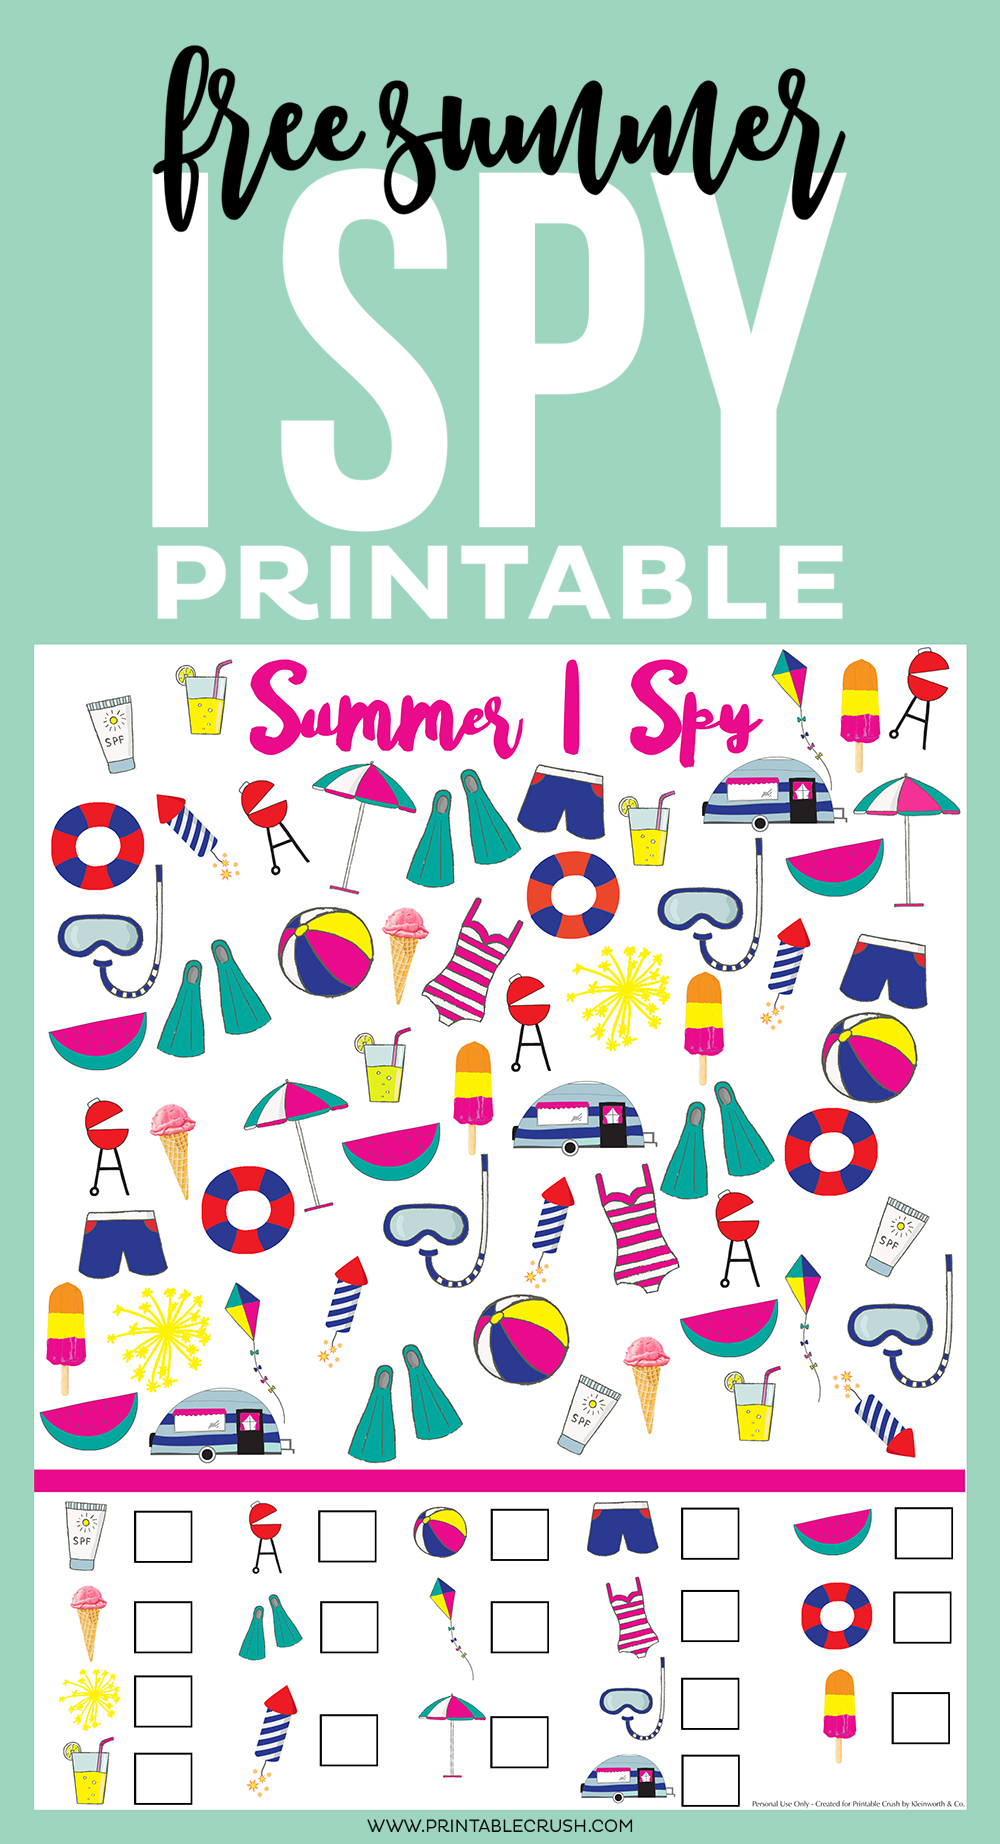 photograph regarding I Spy Printable titled Totally free Summertime I Spy Printable - Printable Crush